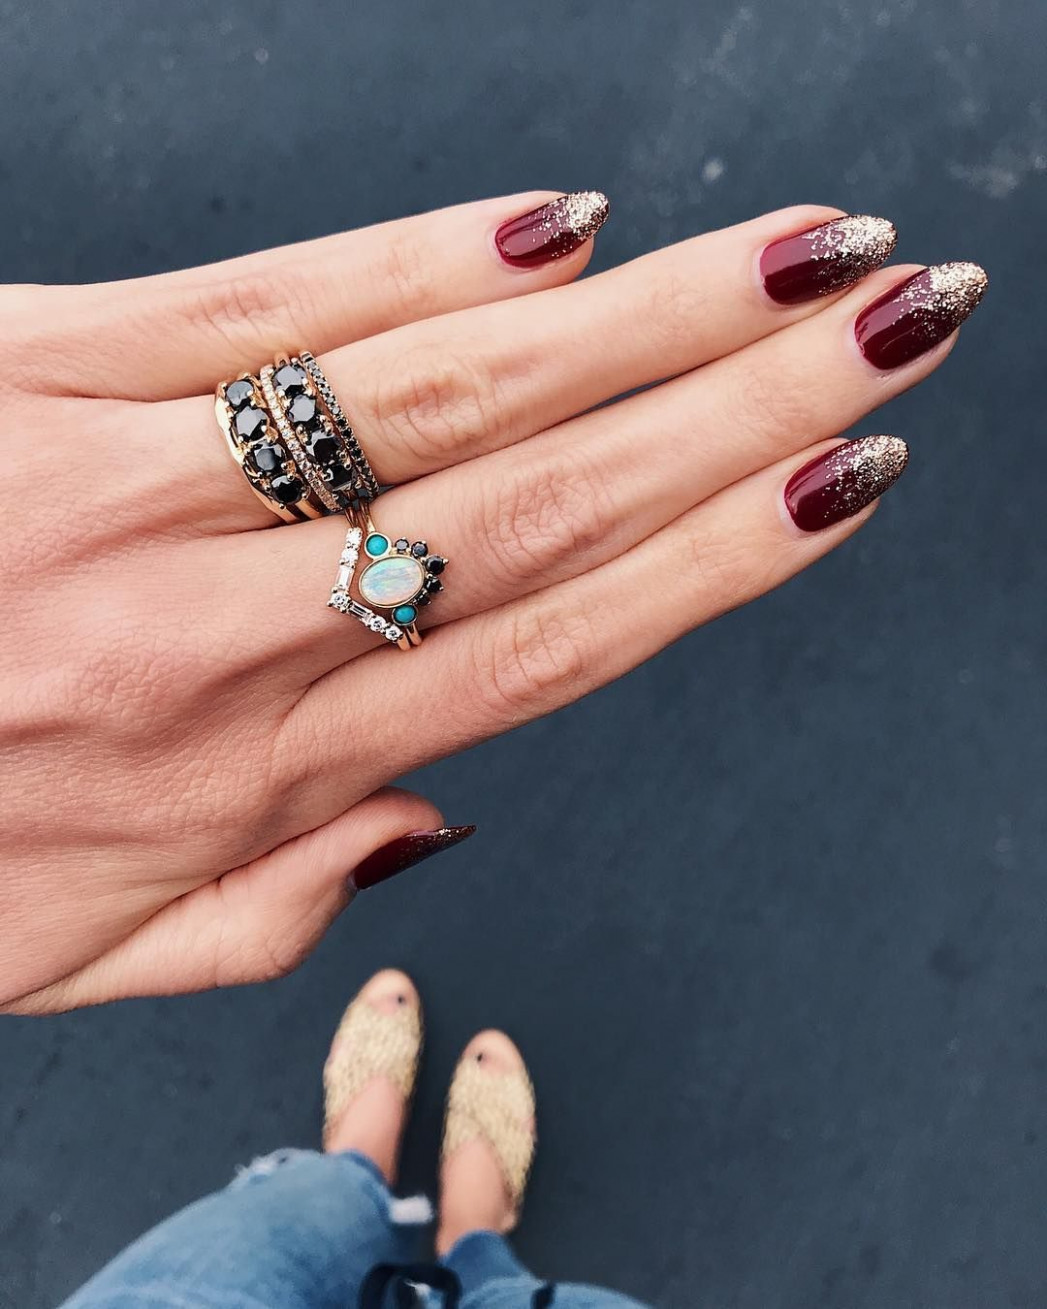 9 Holiday Nail Art Ideas To Get You Into The Christmas Spirit